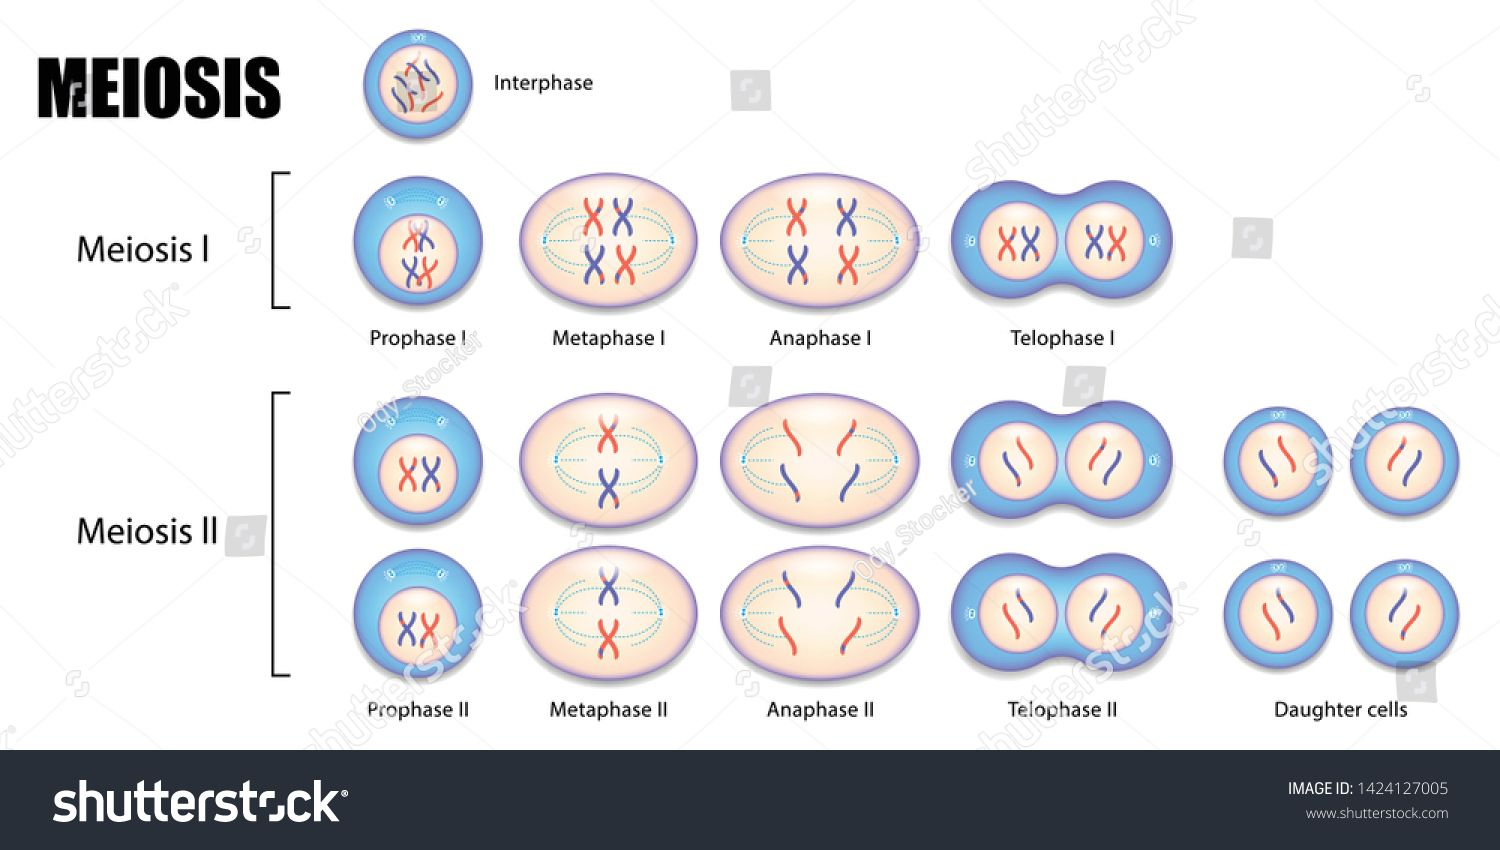 Diagram Of Meiosis Process Cell Division Ad Affiliate Meiosis Diagram Process Division In 2020 Meiosis Cell Division Cell Diagram